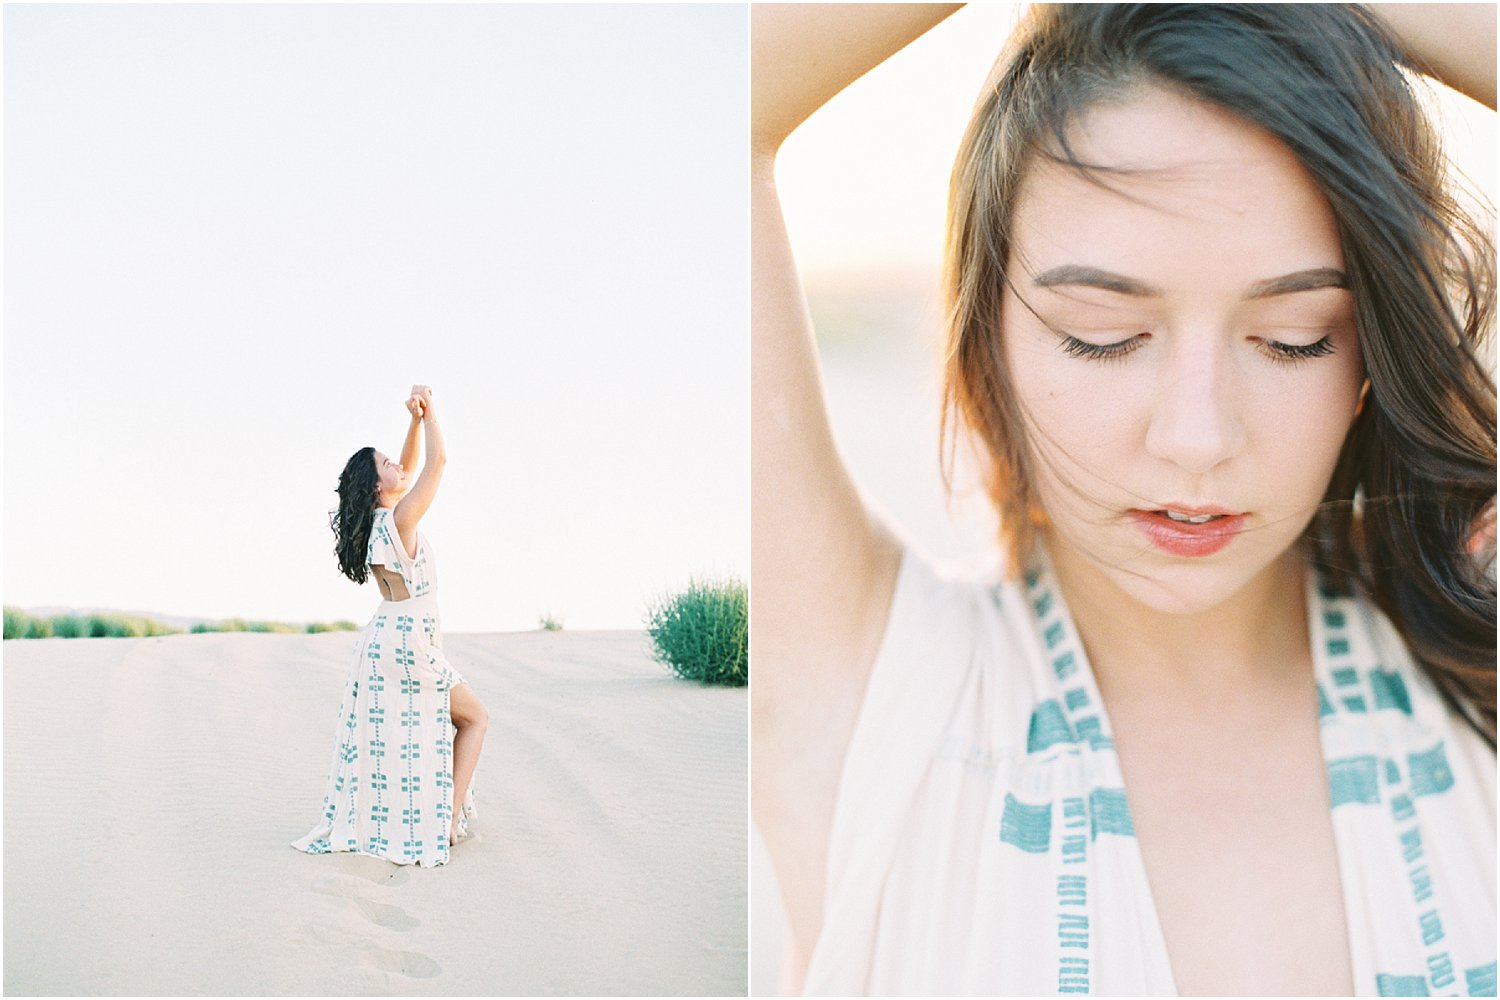 ARP_Ethereal Desert Beauty Session 020.jpg